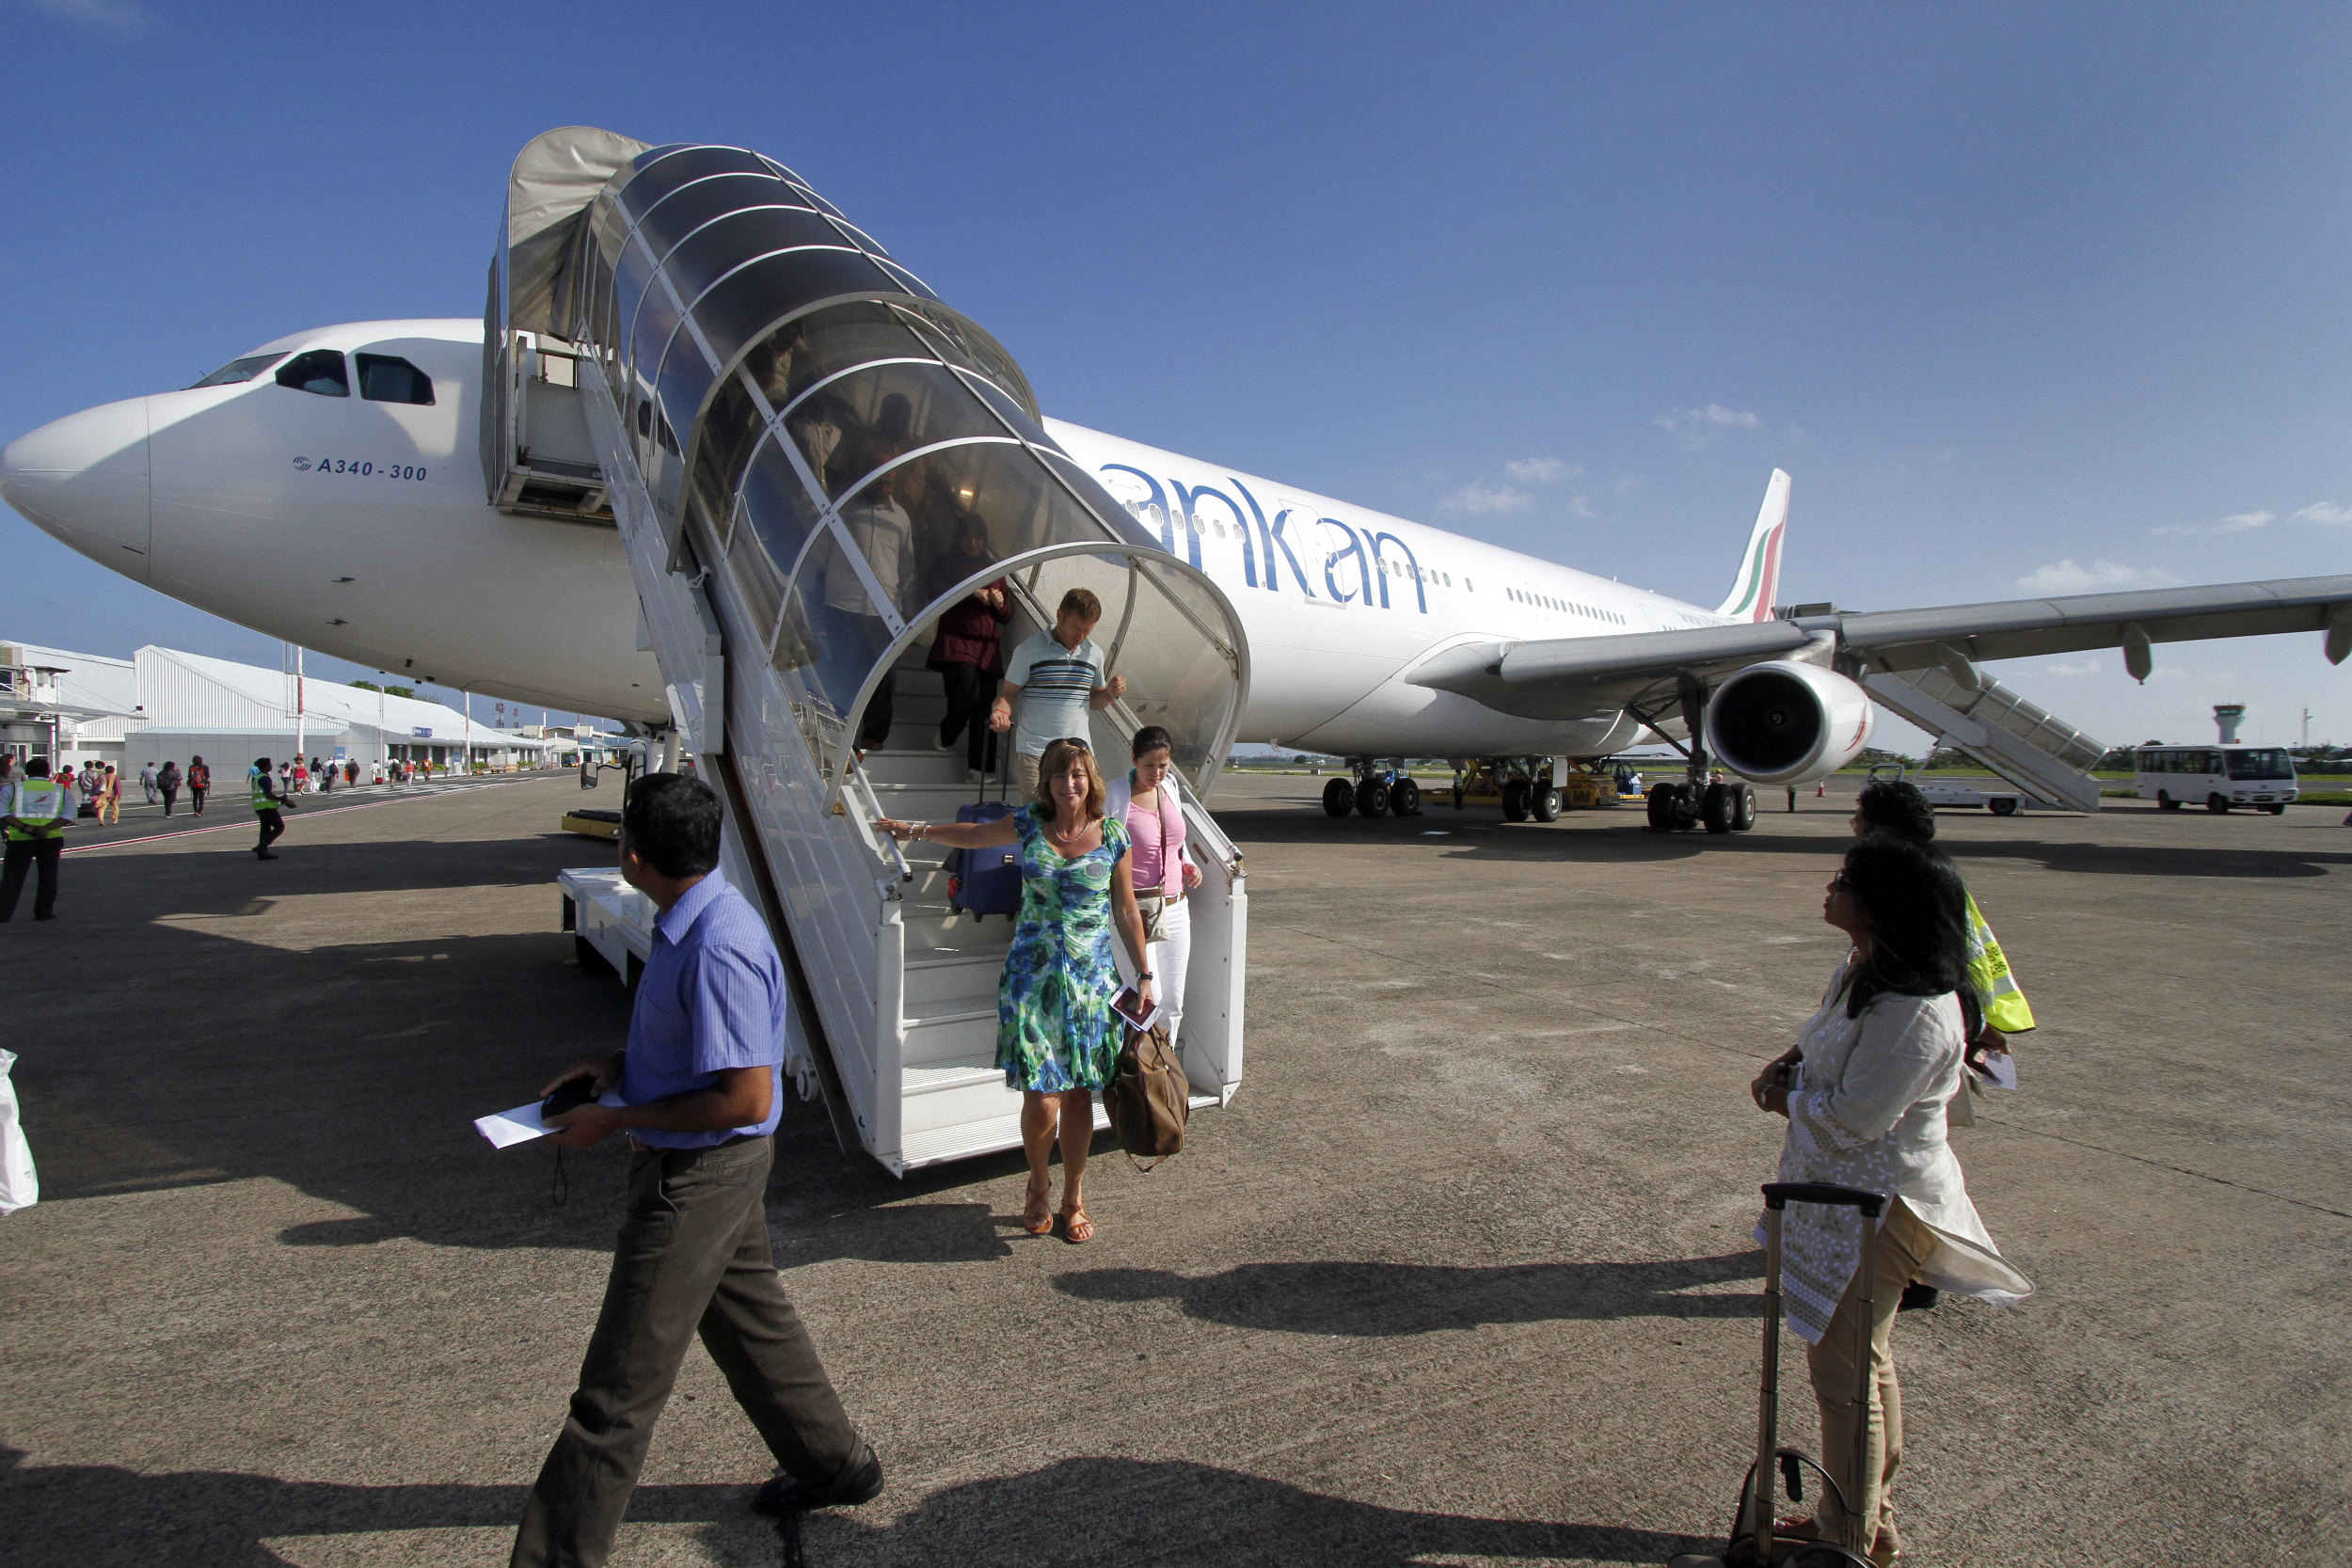 Luchtvaart Malediven Male Airport SriLankan Airlines